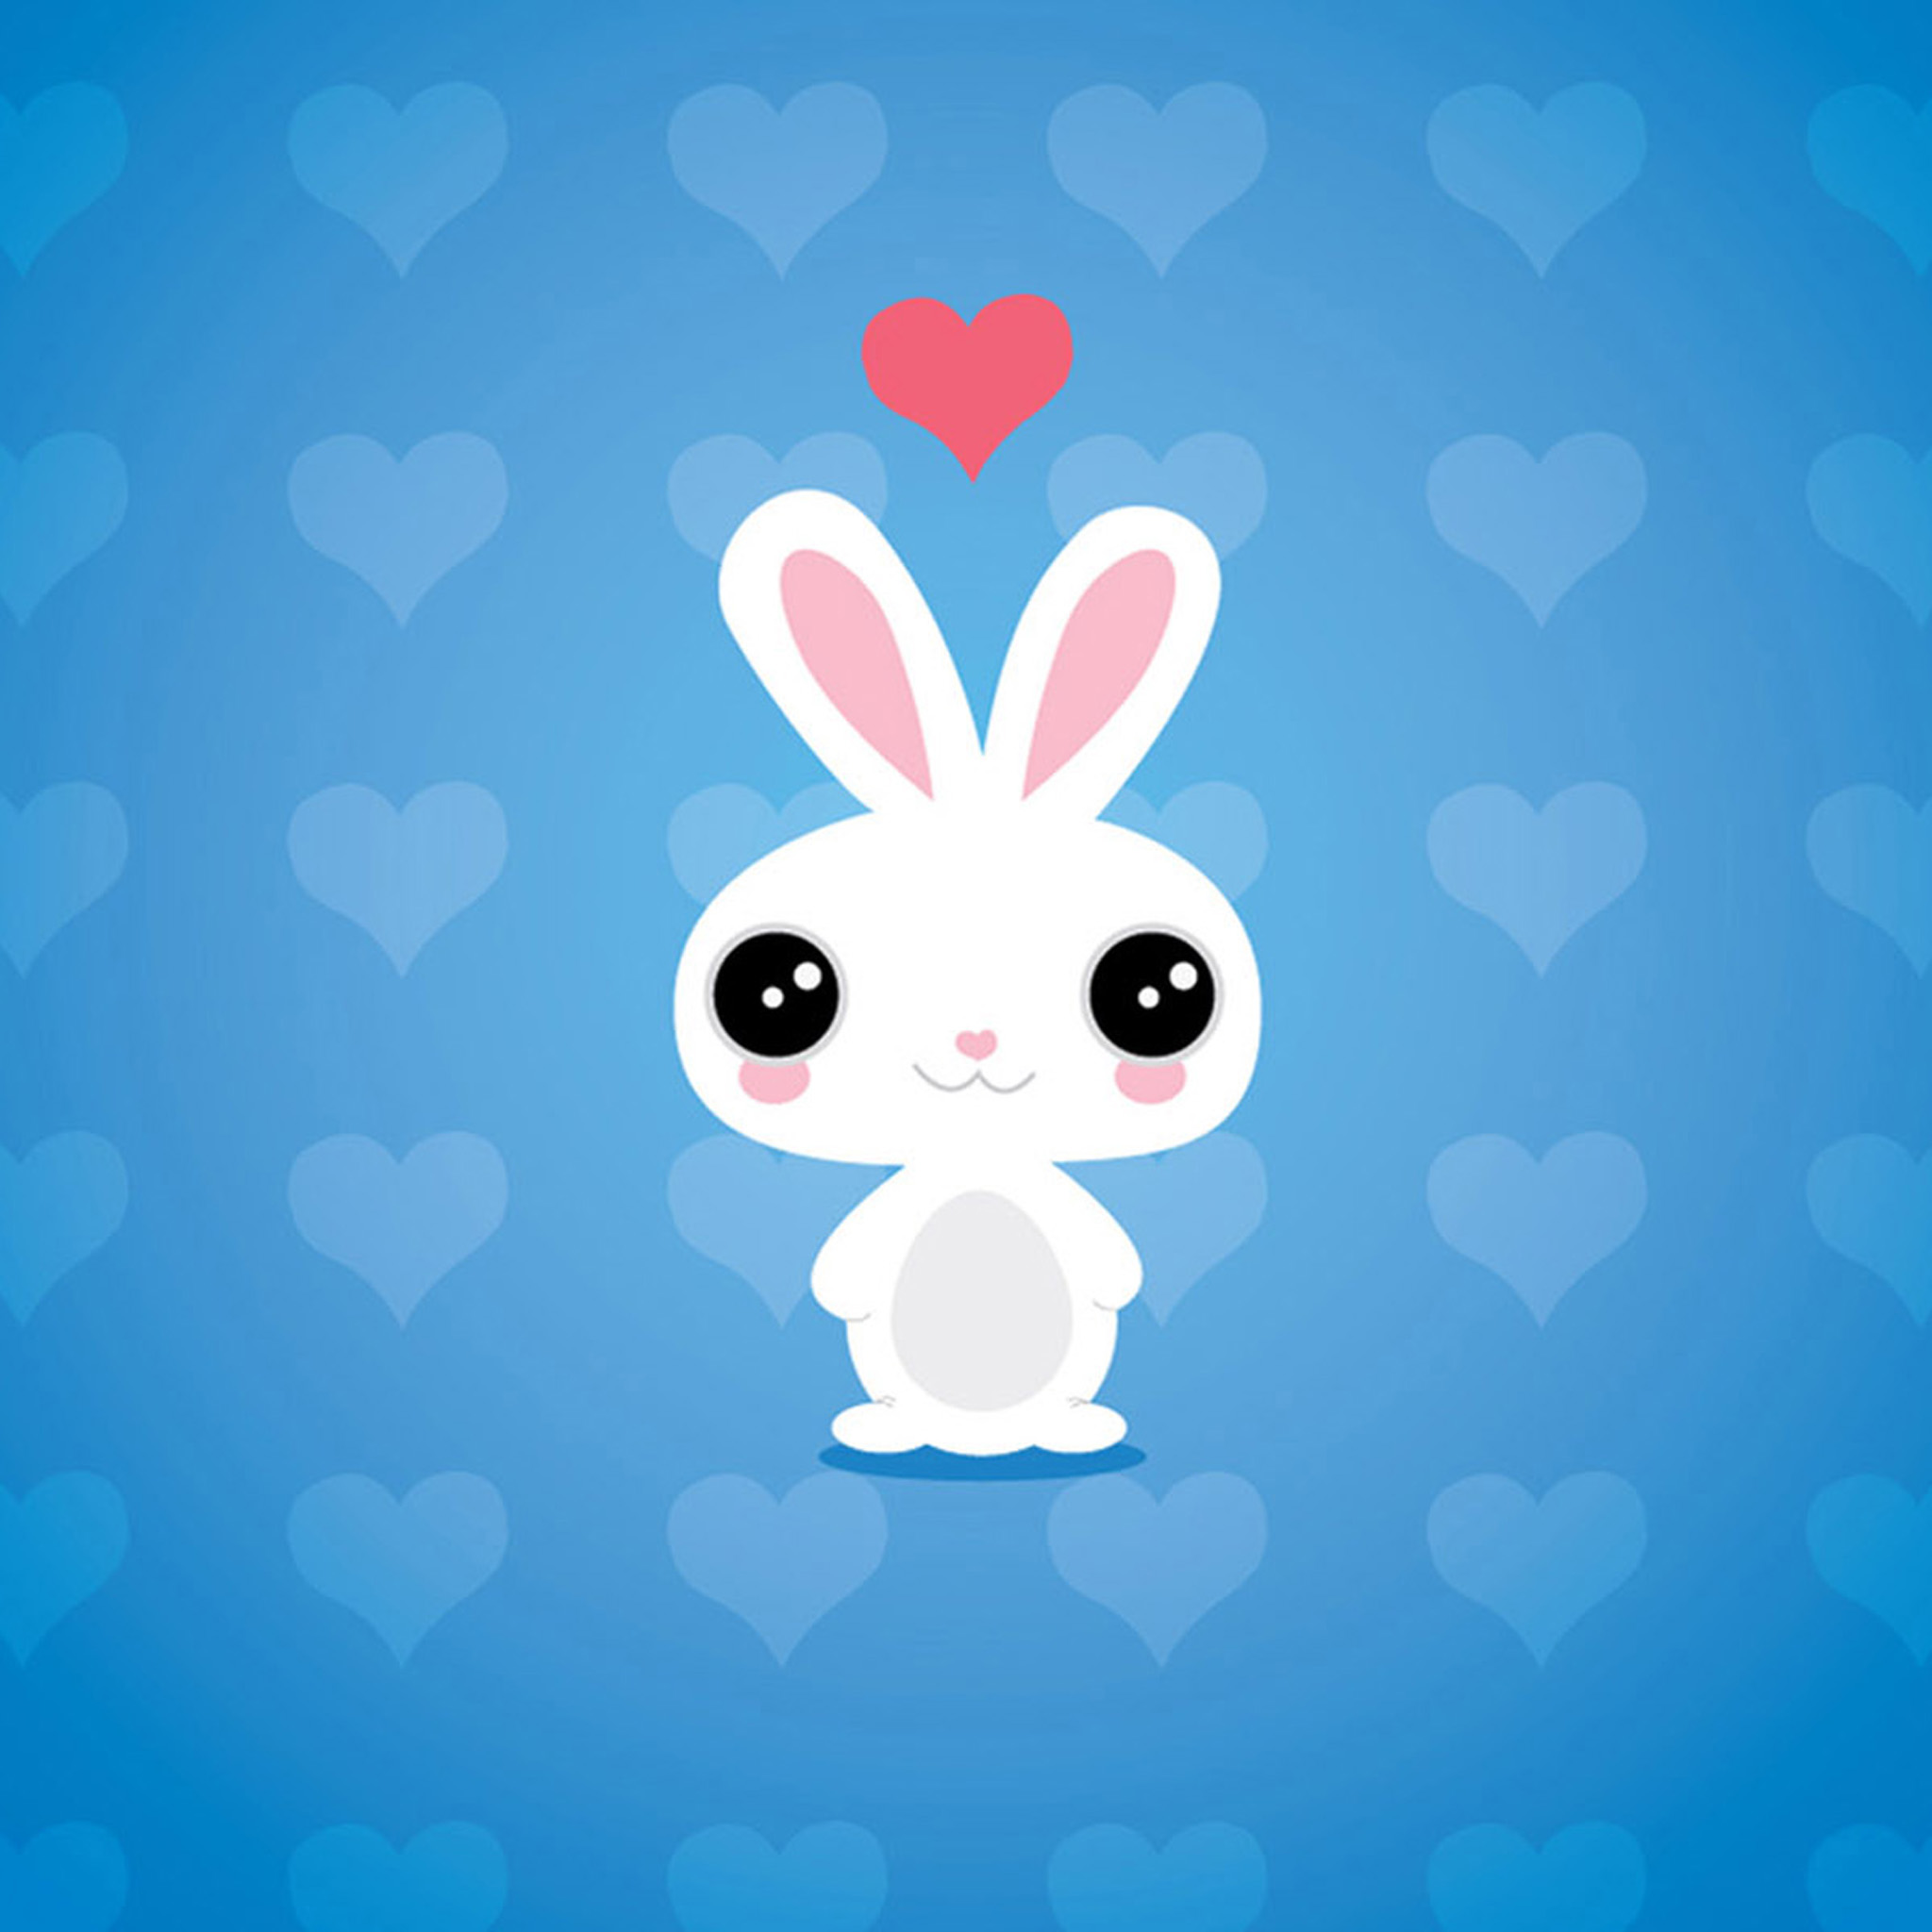 Cute Wallpaper For Ipad